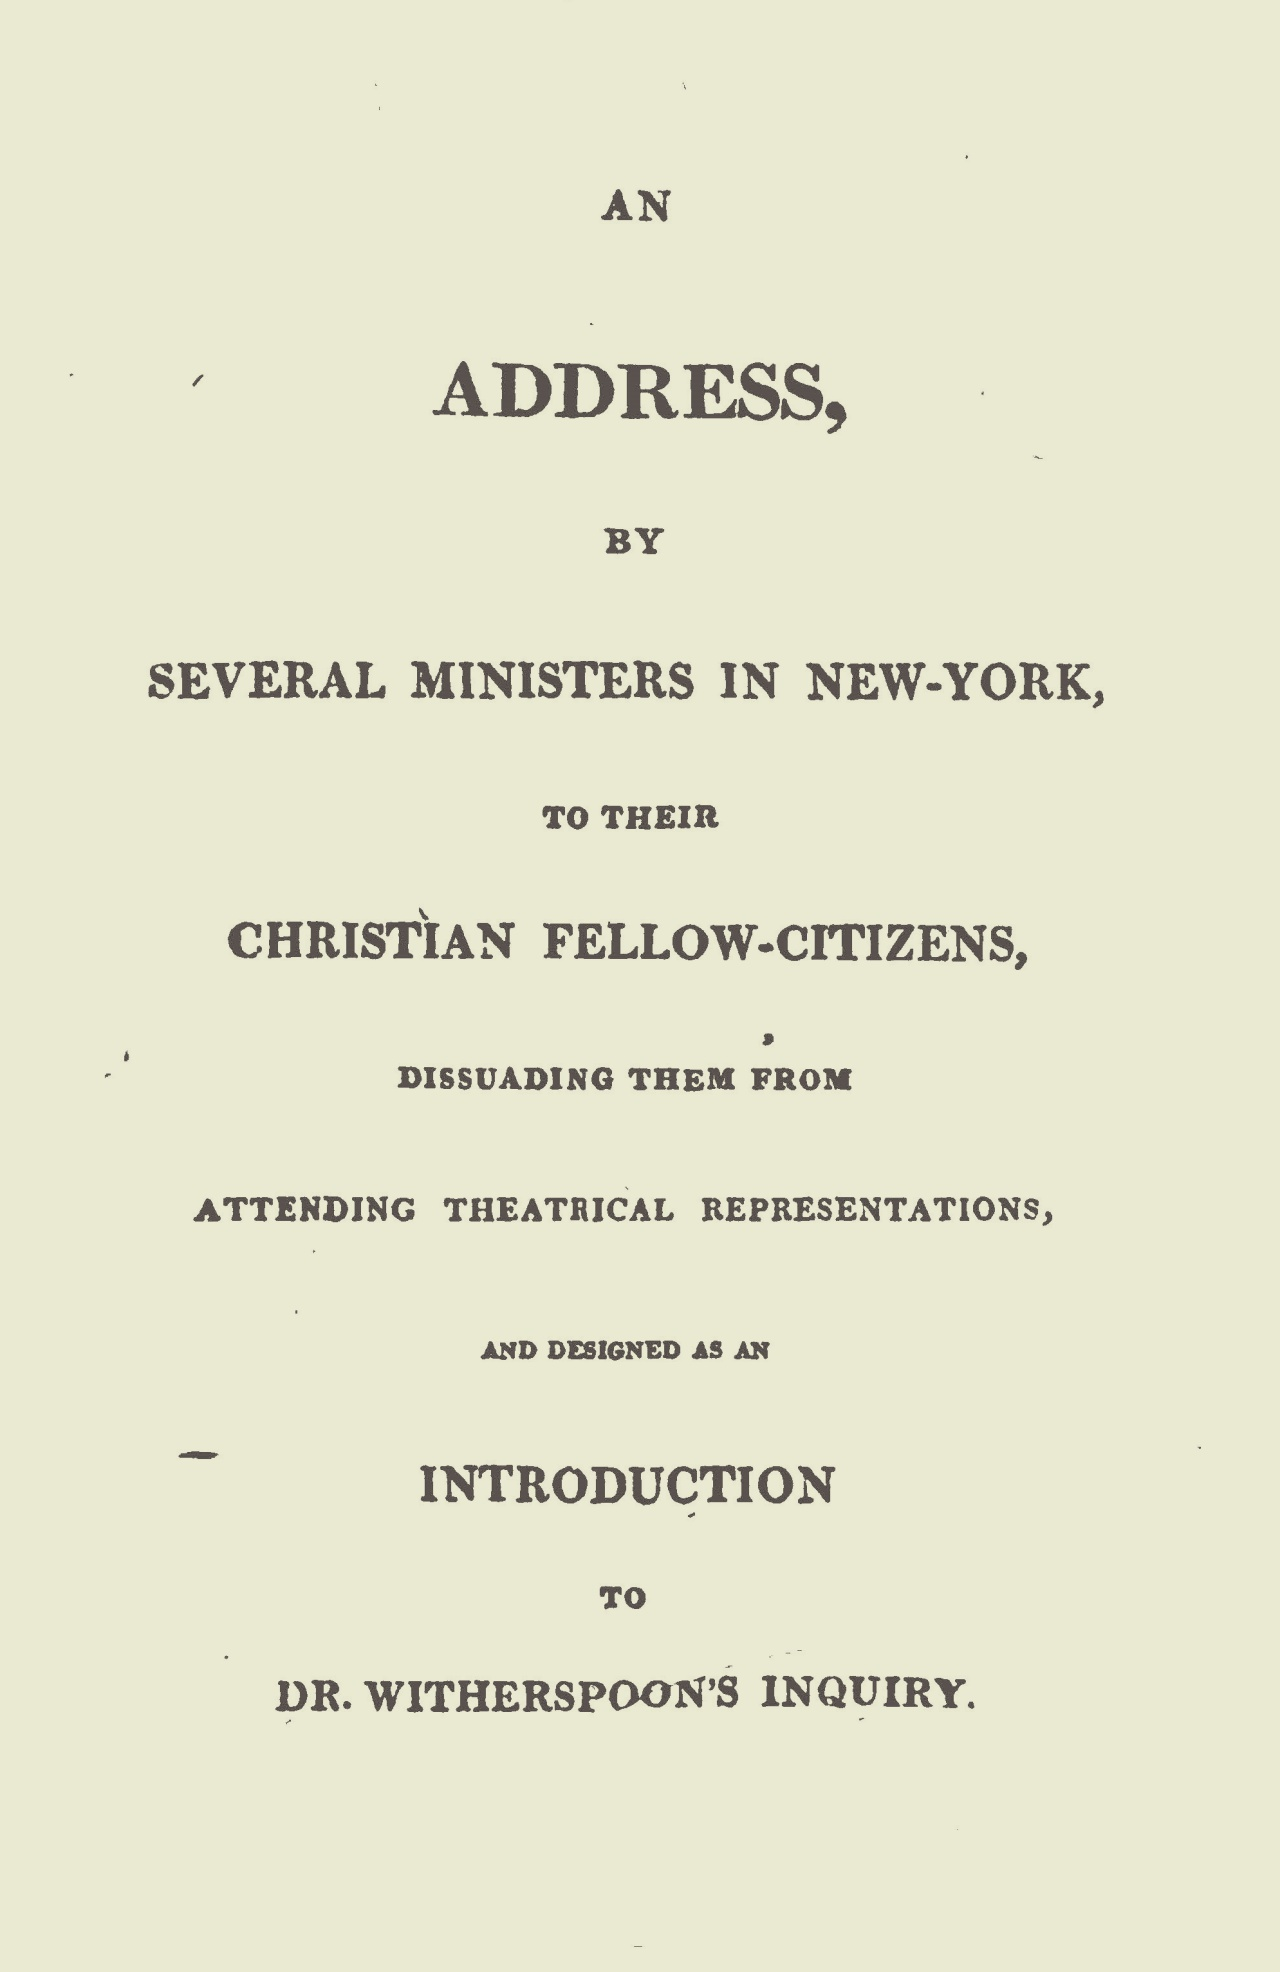 Miller, Samuel, An Address on Theatrical Representations Title Page.jpg